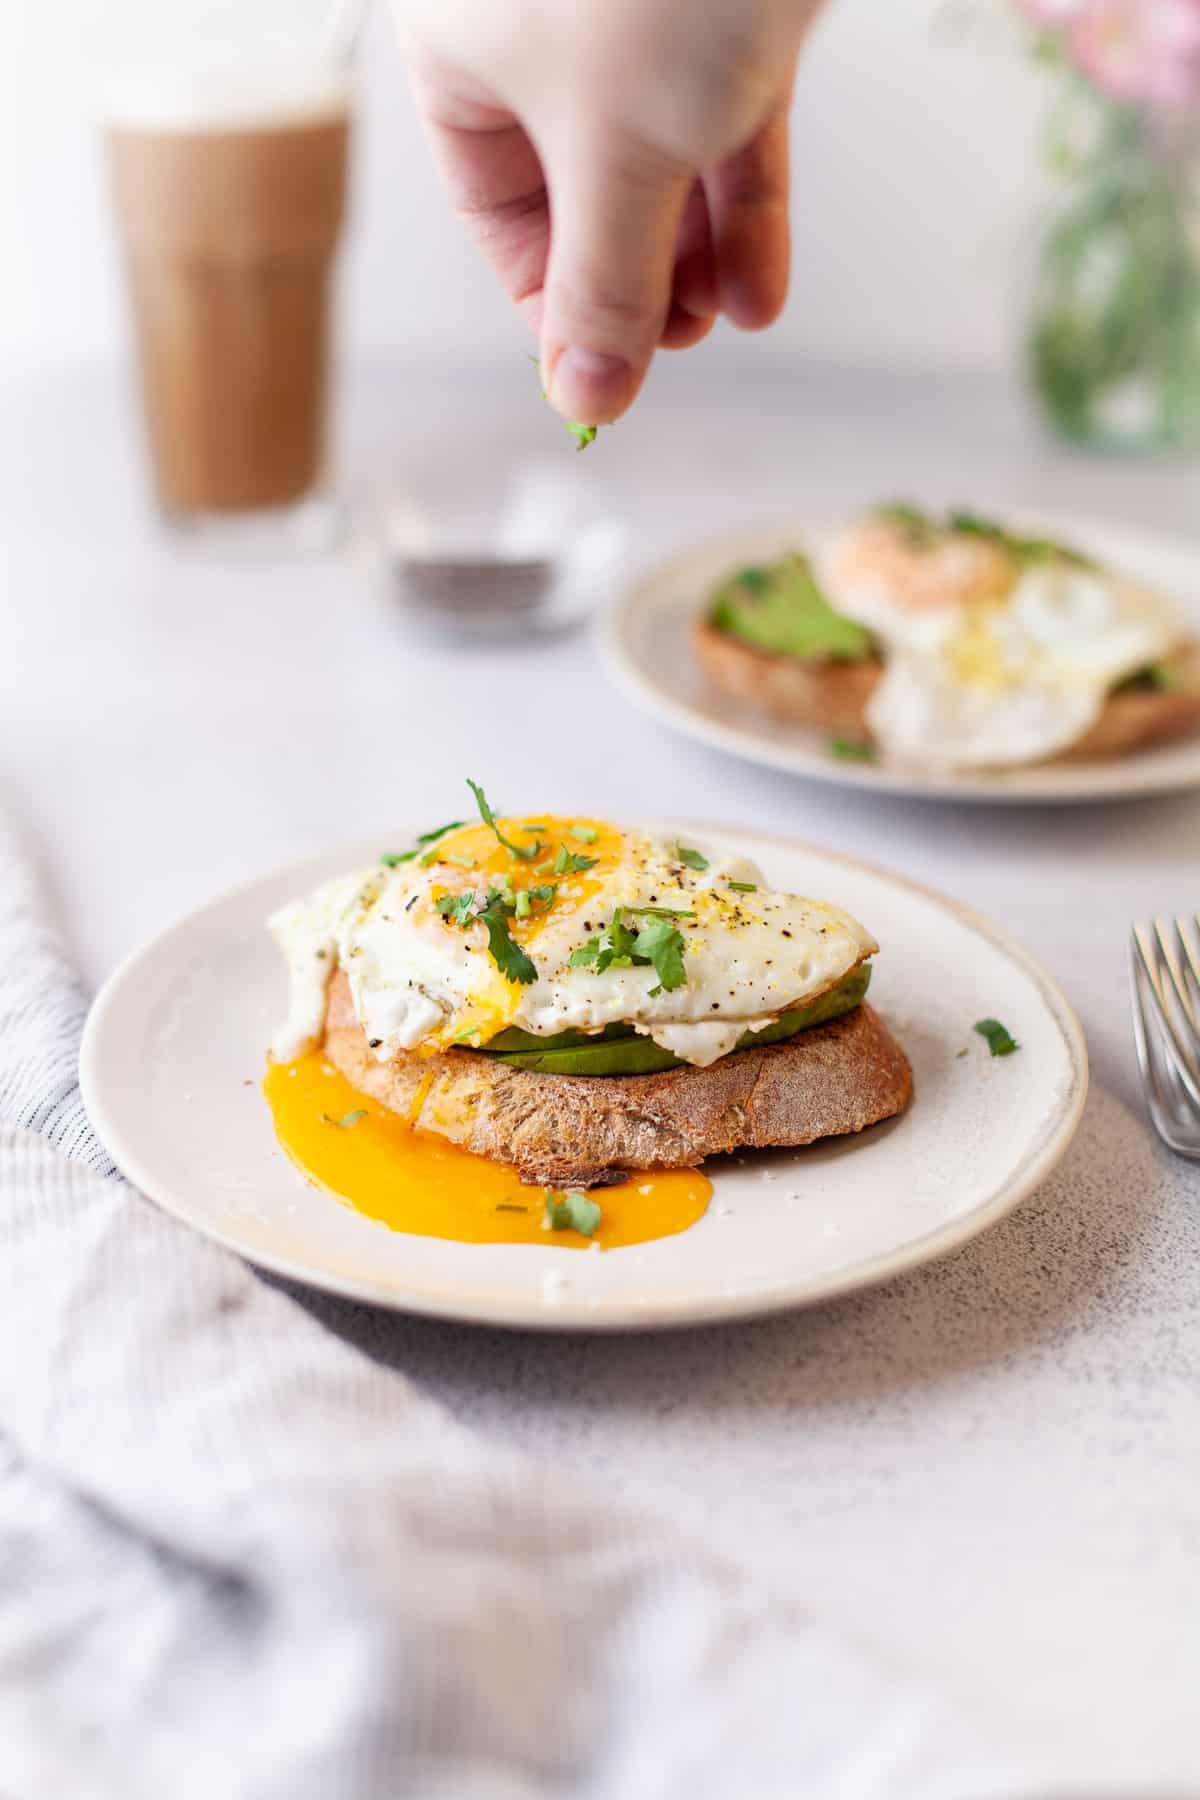 Egg topped avocado toast being sprinkled with herbs.